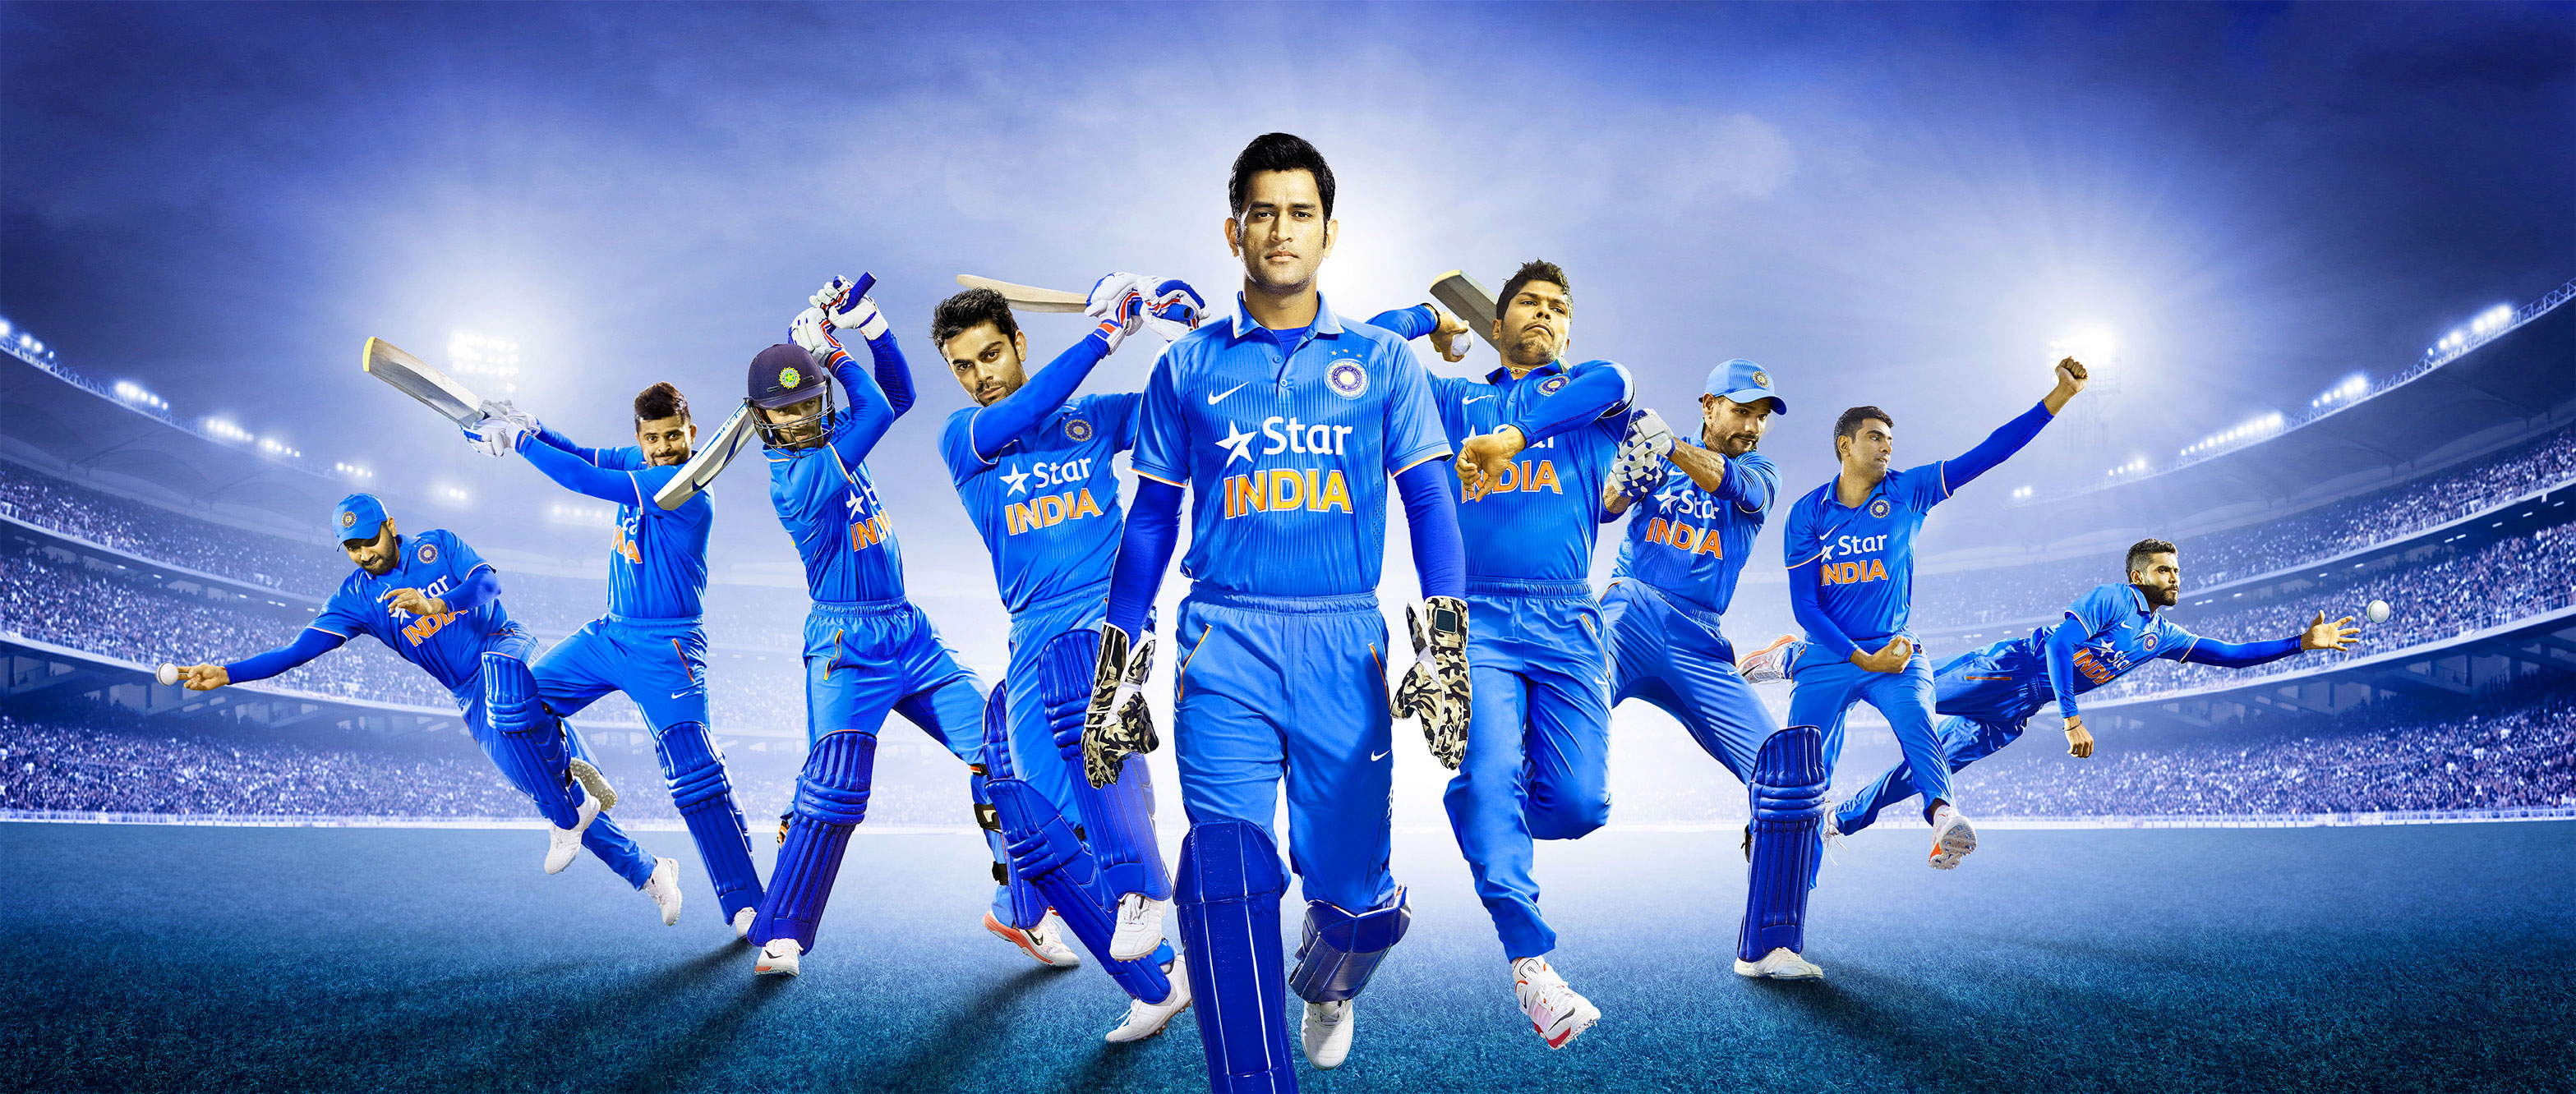 INDIAN CRICKET TEAM PLAYER IMAGES PHOTO PICS FREE DOWNLOAD